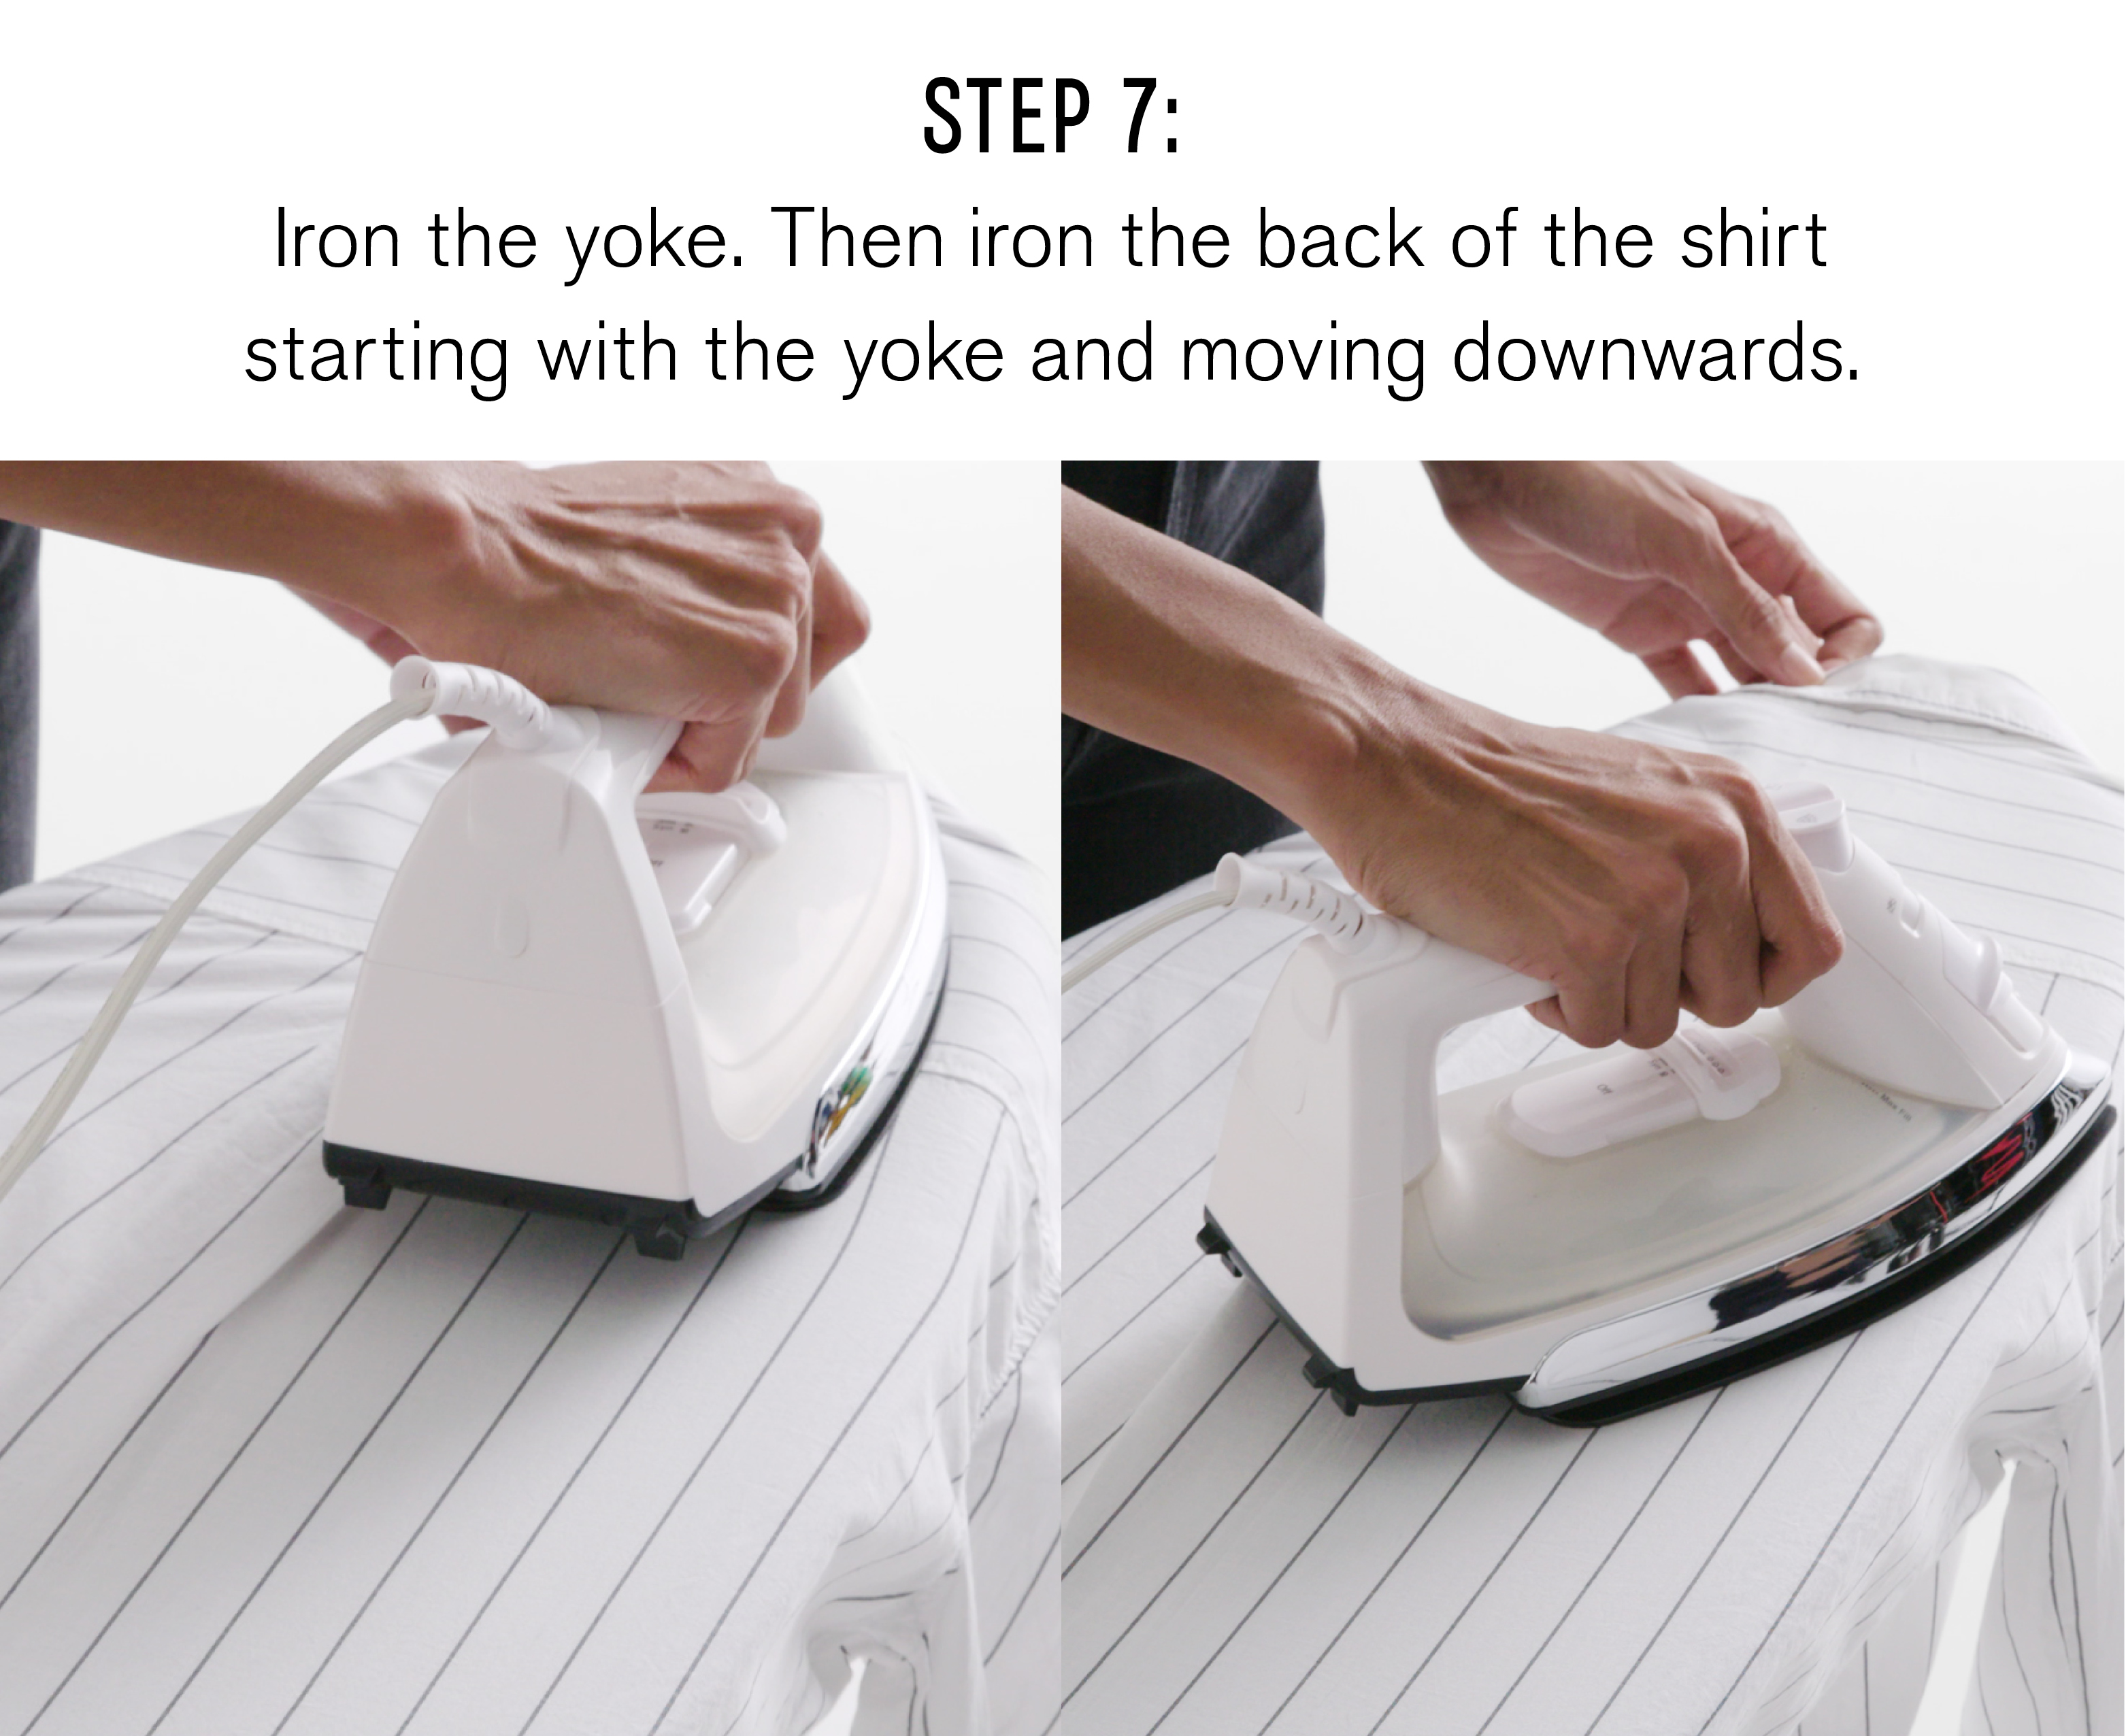 step-seven-iron-the-yoke-then-iron-the-back-of-the-shirt-starting-with-the-yoke-and-moving-downwards